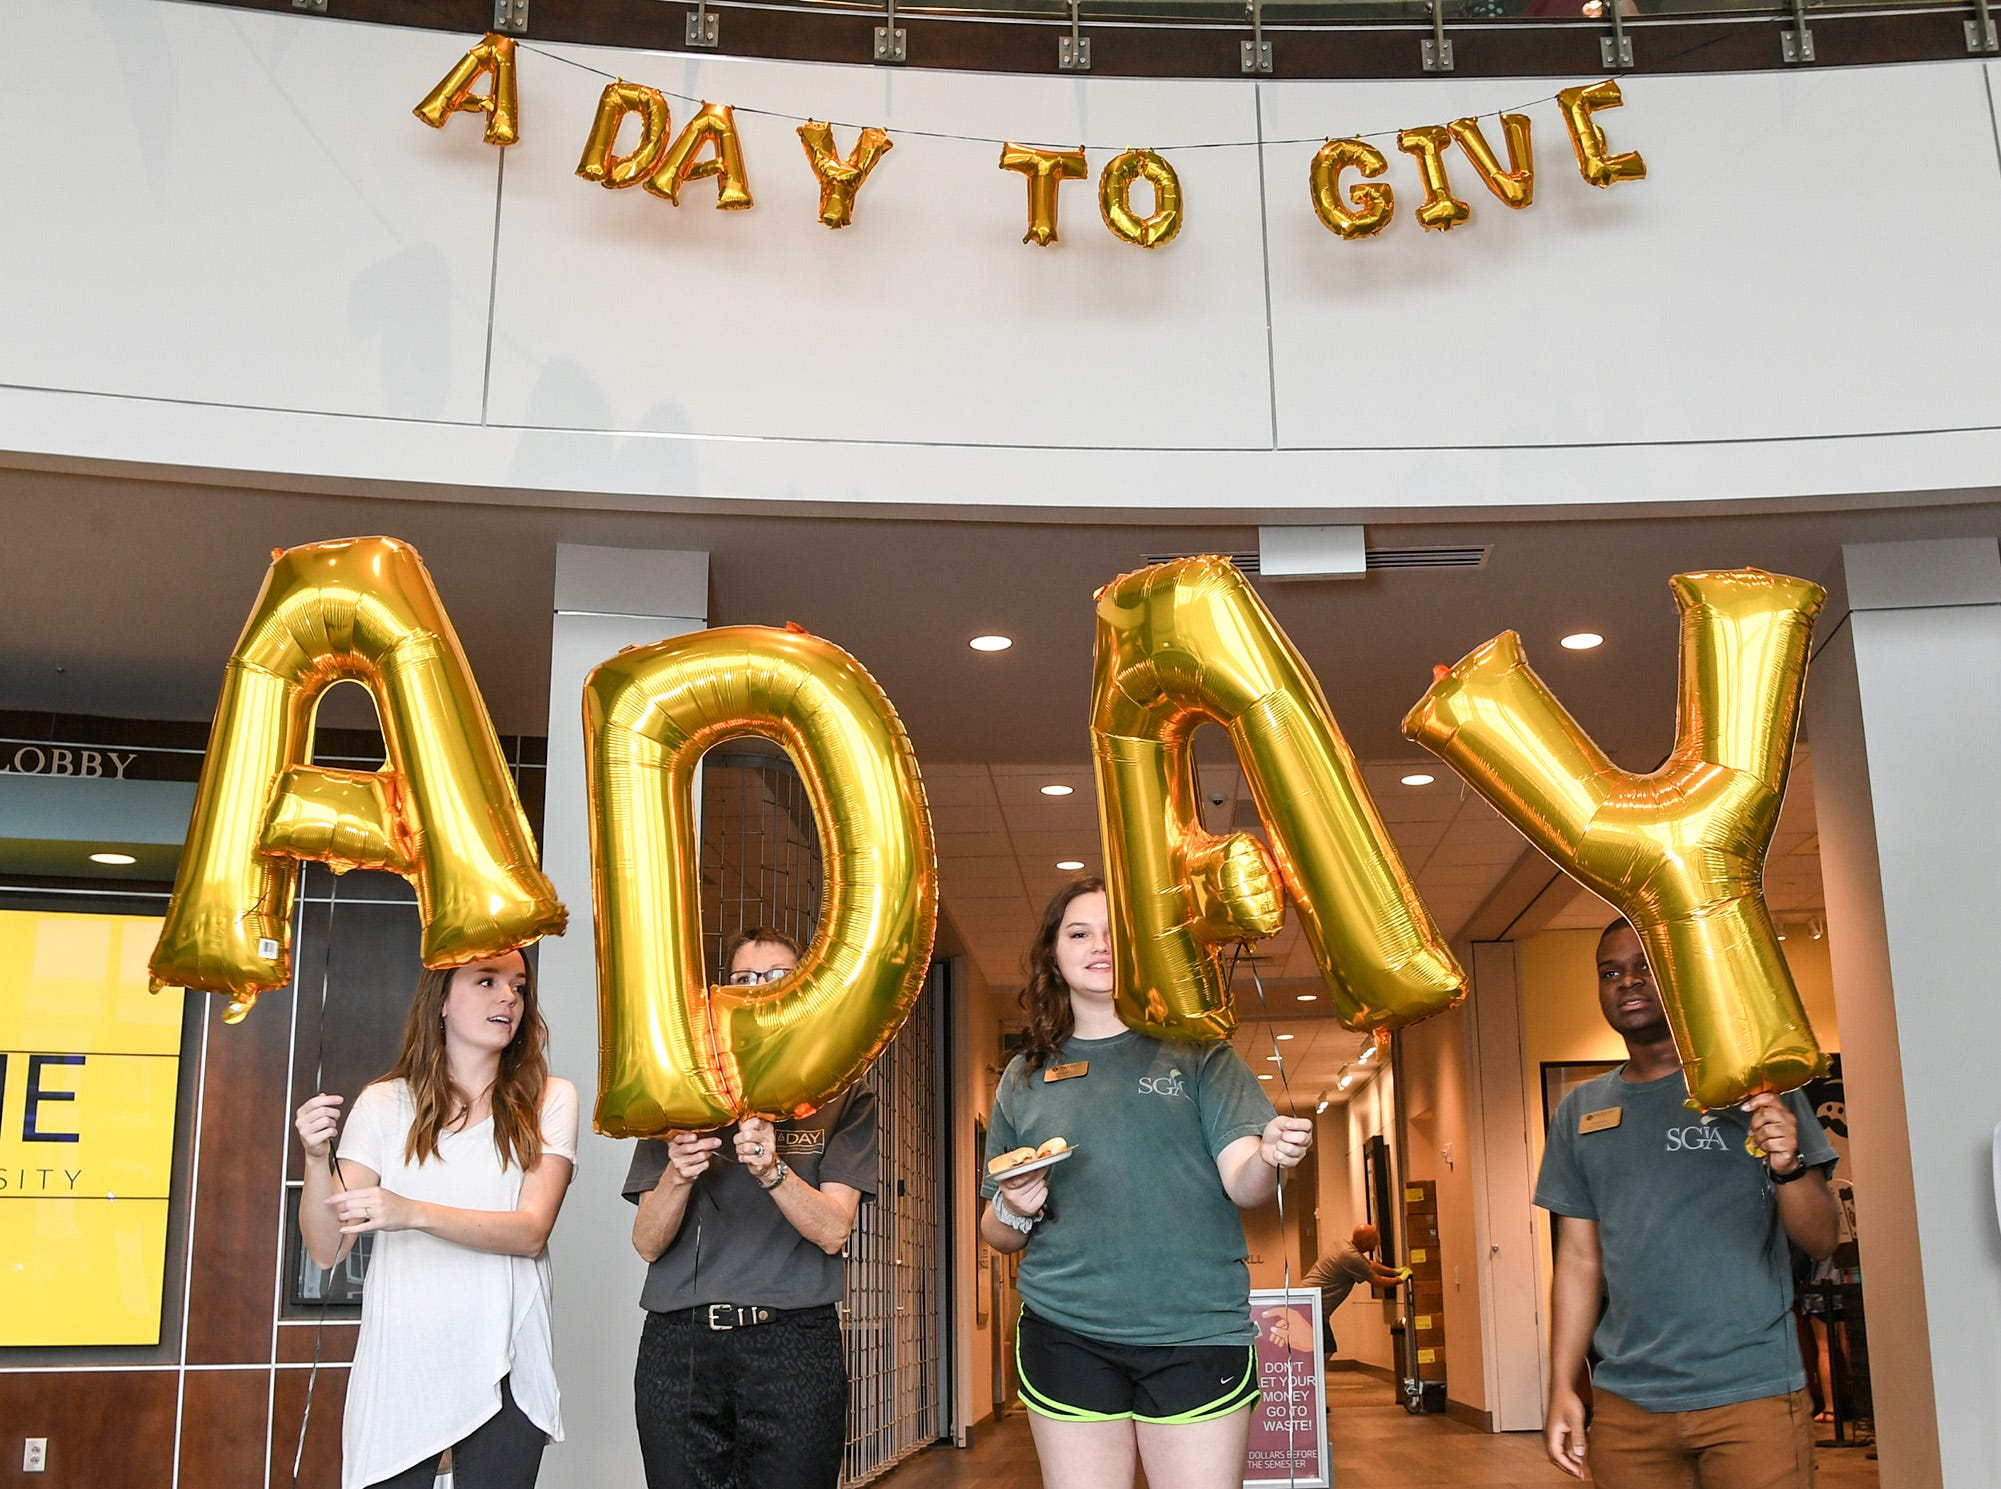 Anderson University students hold balloons spelling A Day  inside the G. Ross Anderson Student Center, during A Day to Give at Anderson University Thursday.  The 24-hour fundraising drive event is meant to give people from the school a chance to participate in events on campus to recognize the past, present, and future.